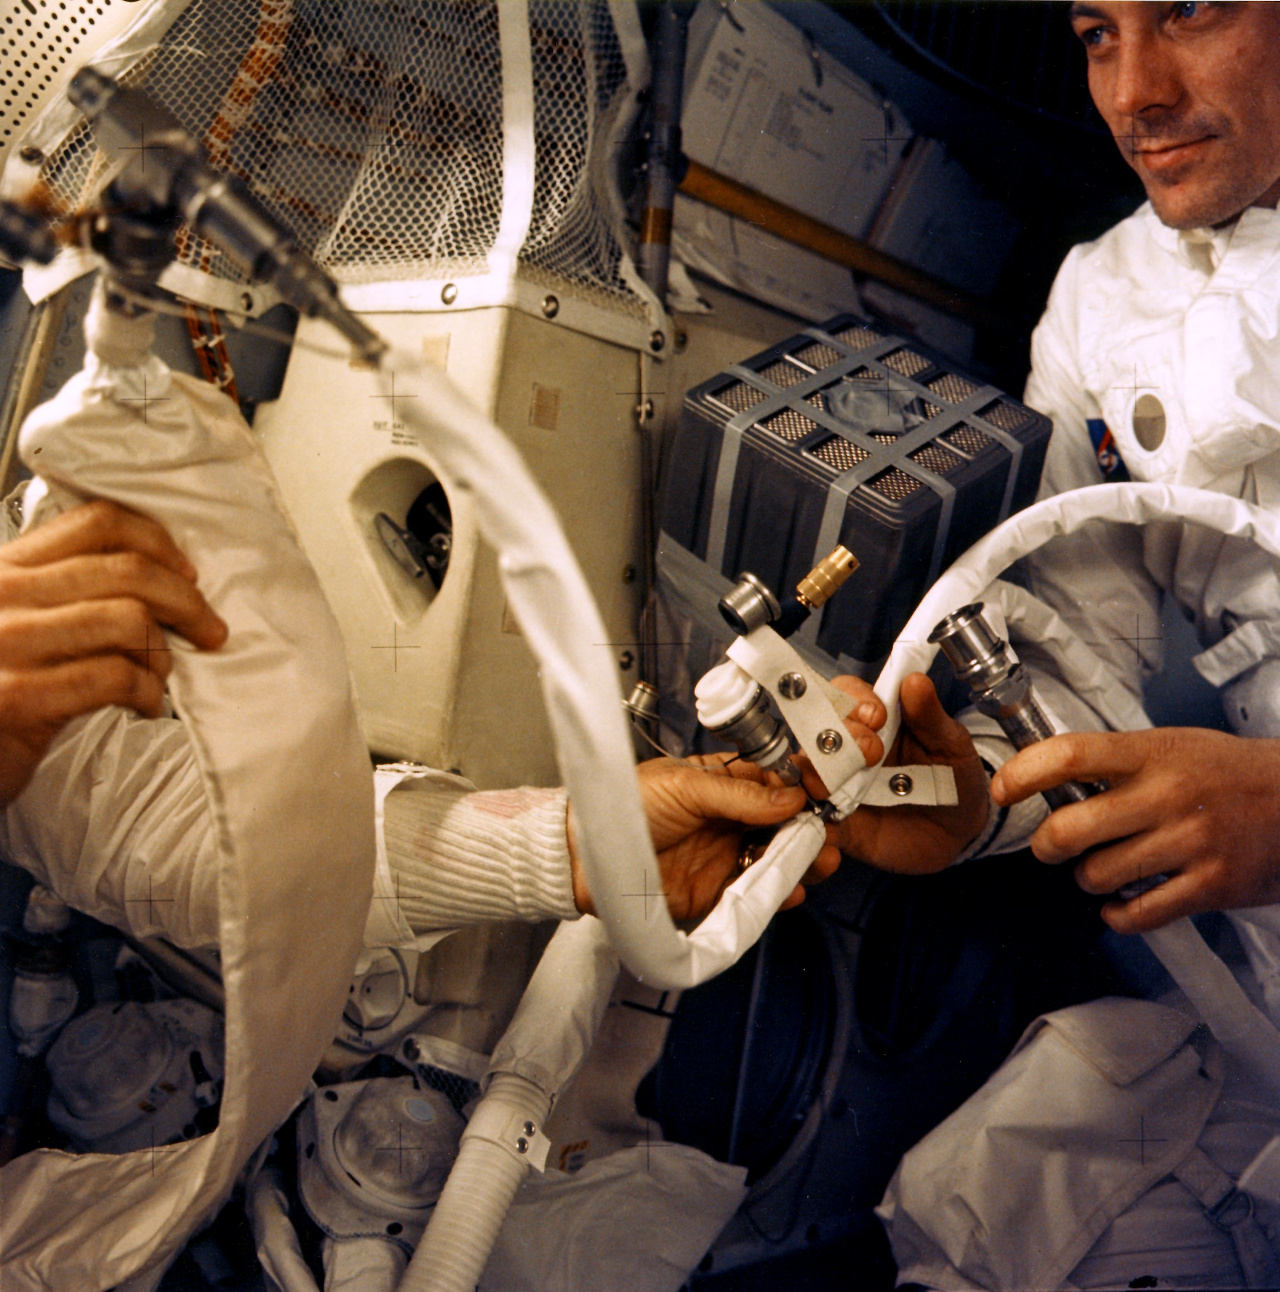 Crew from the Apollo 13 mission next to their jerry-rigged life-support system on their trip back to Earth